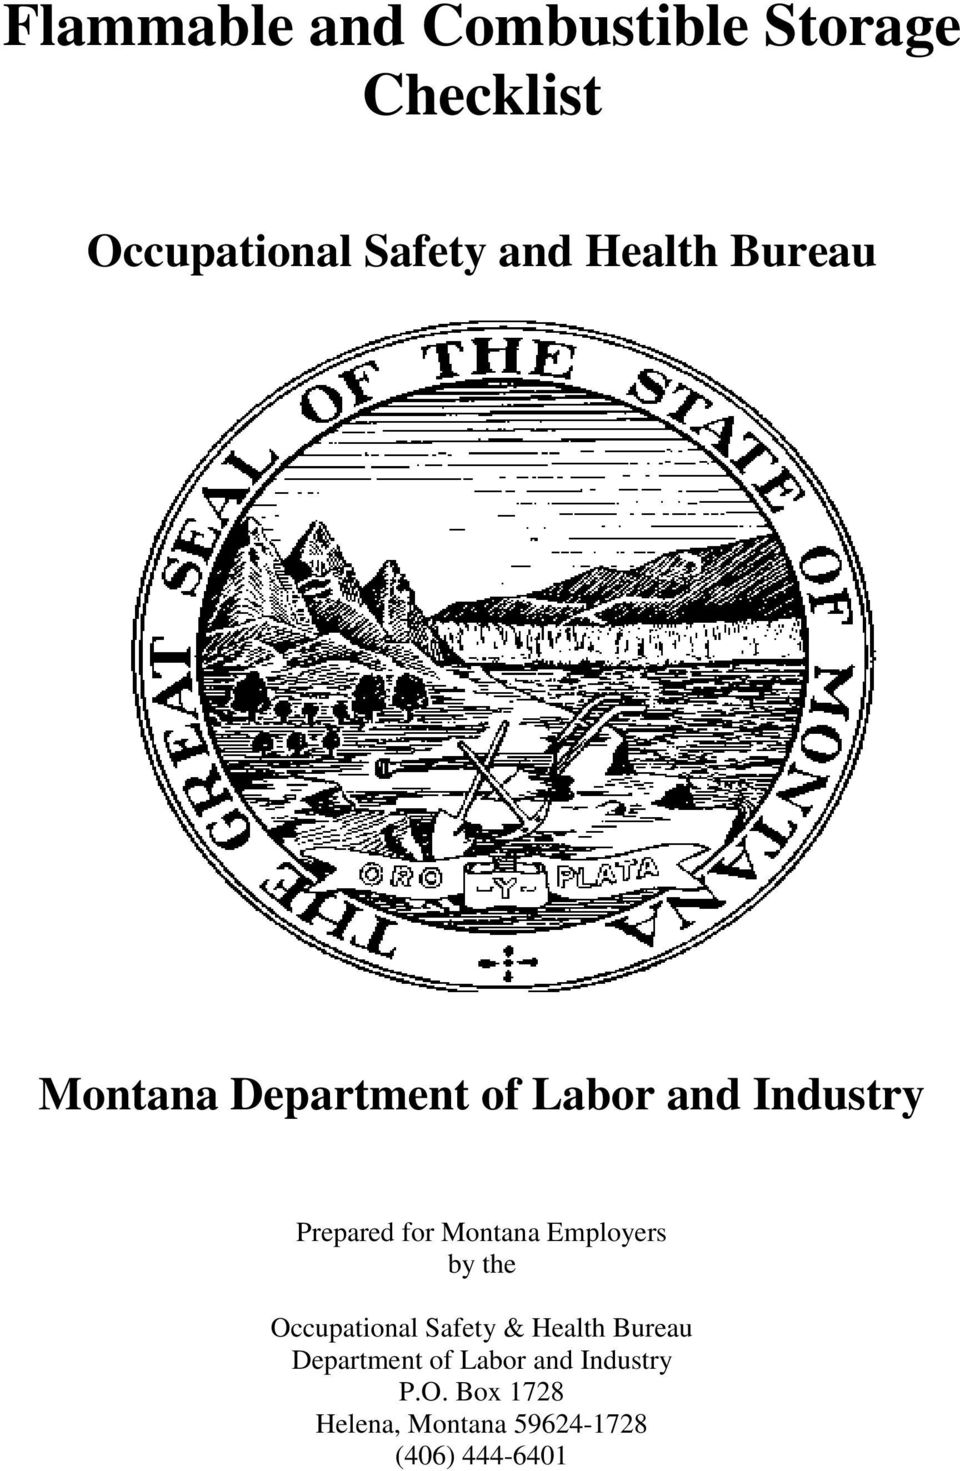 Montana Employers by the Occupational Safety & Health Bureau Department